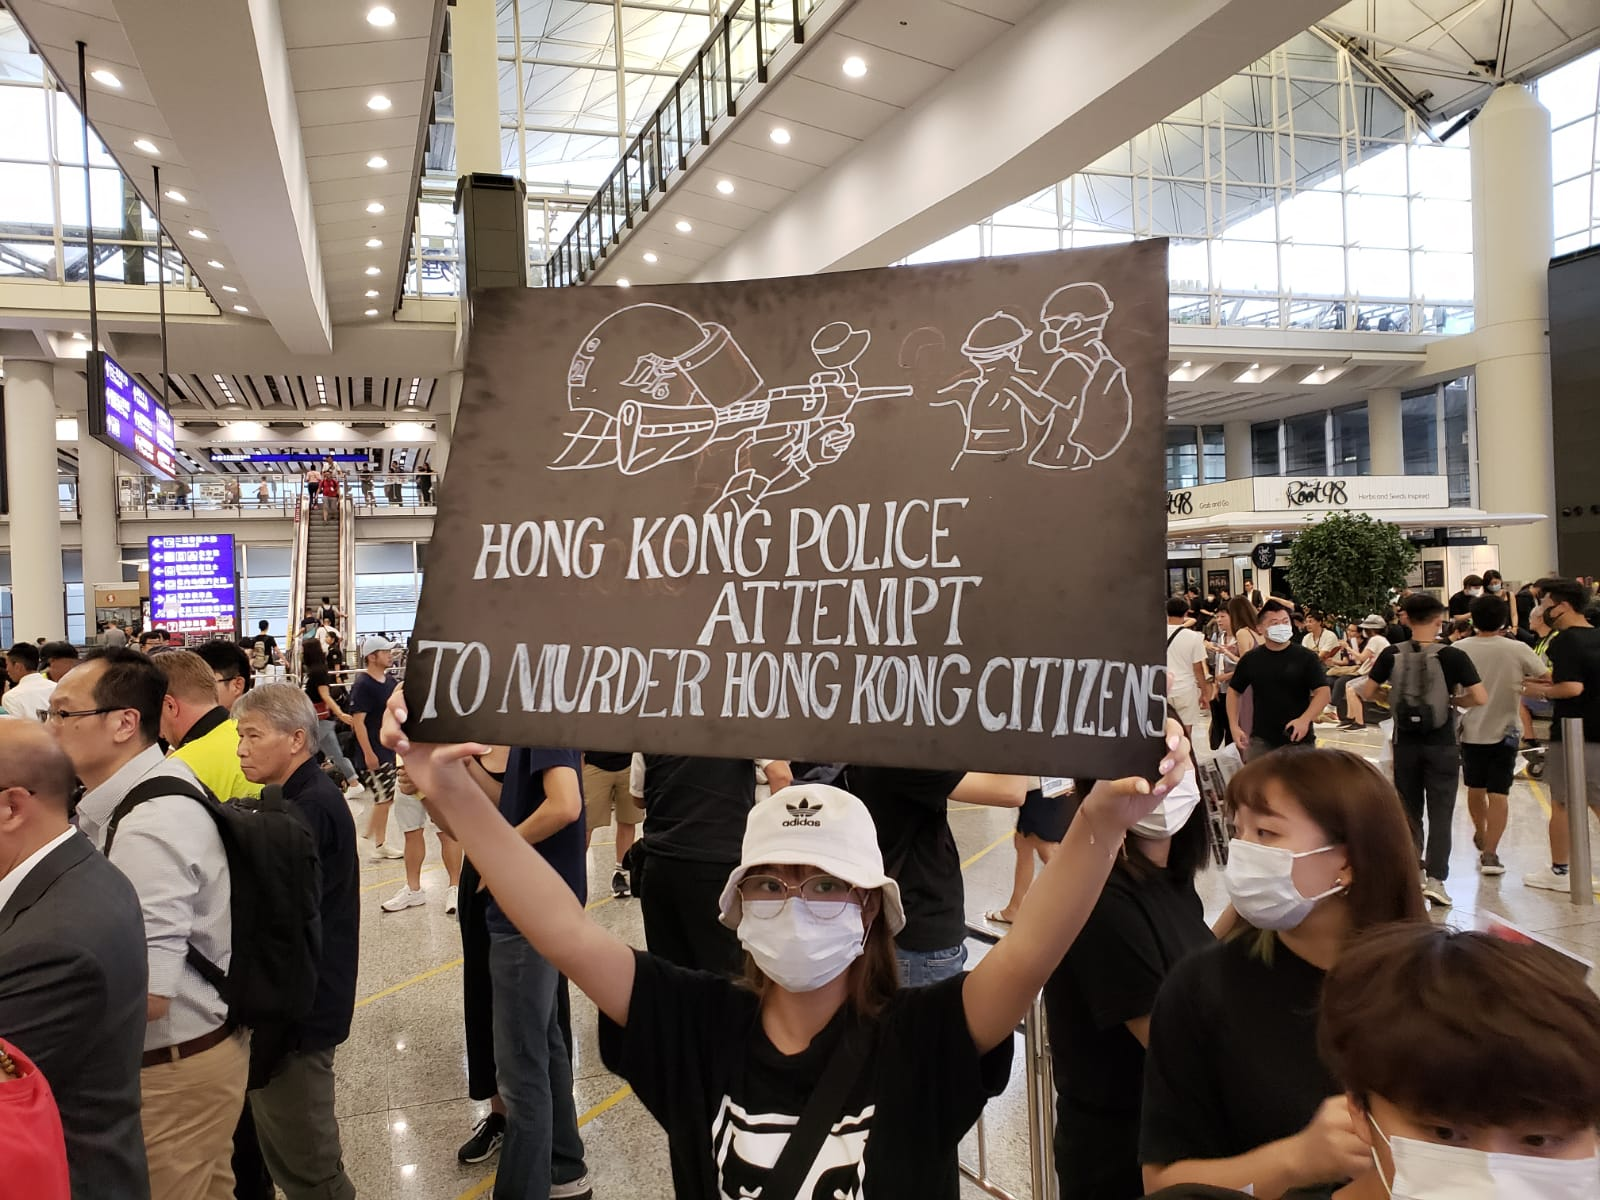 Protesters greet arriving travelers at the airport with signs warning of police brutality.